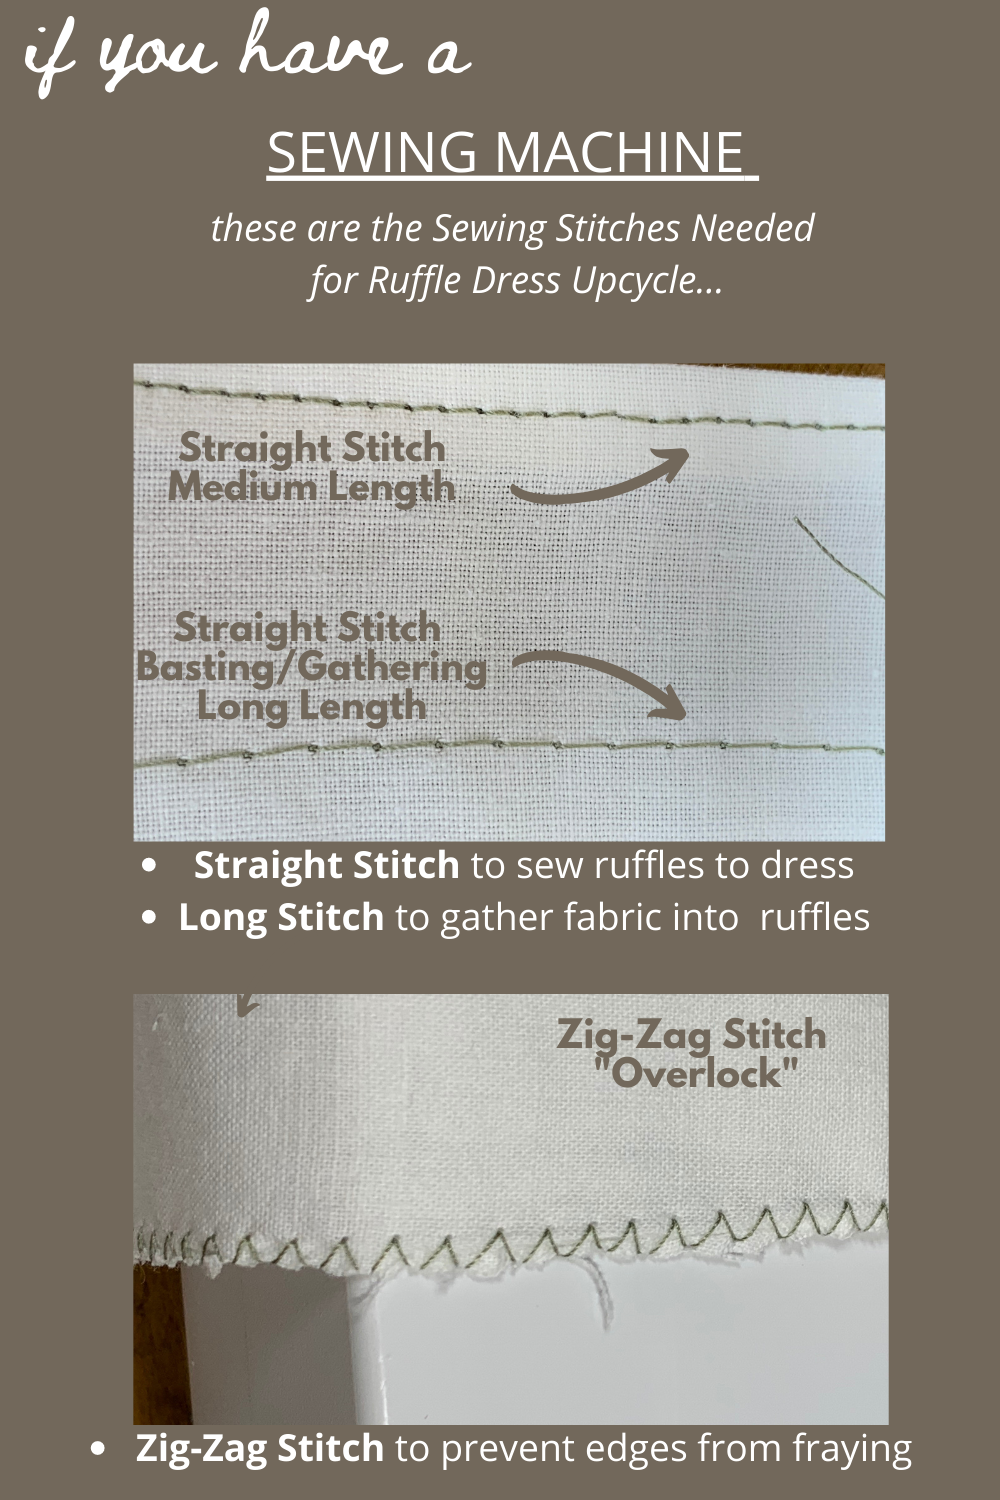 image of stitches to use for beginner upcycle